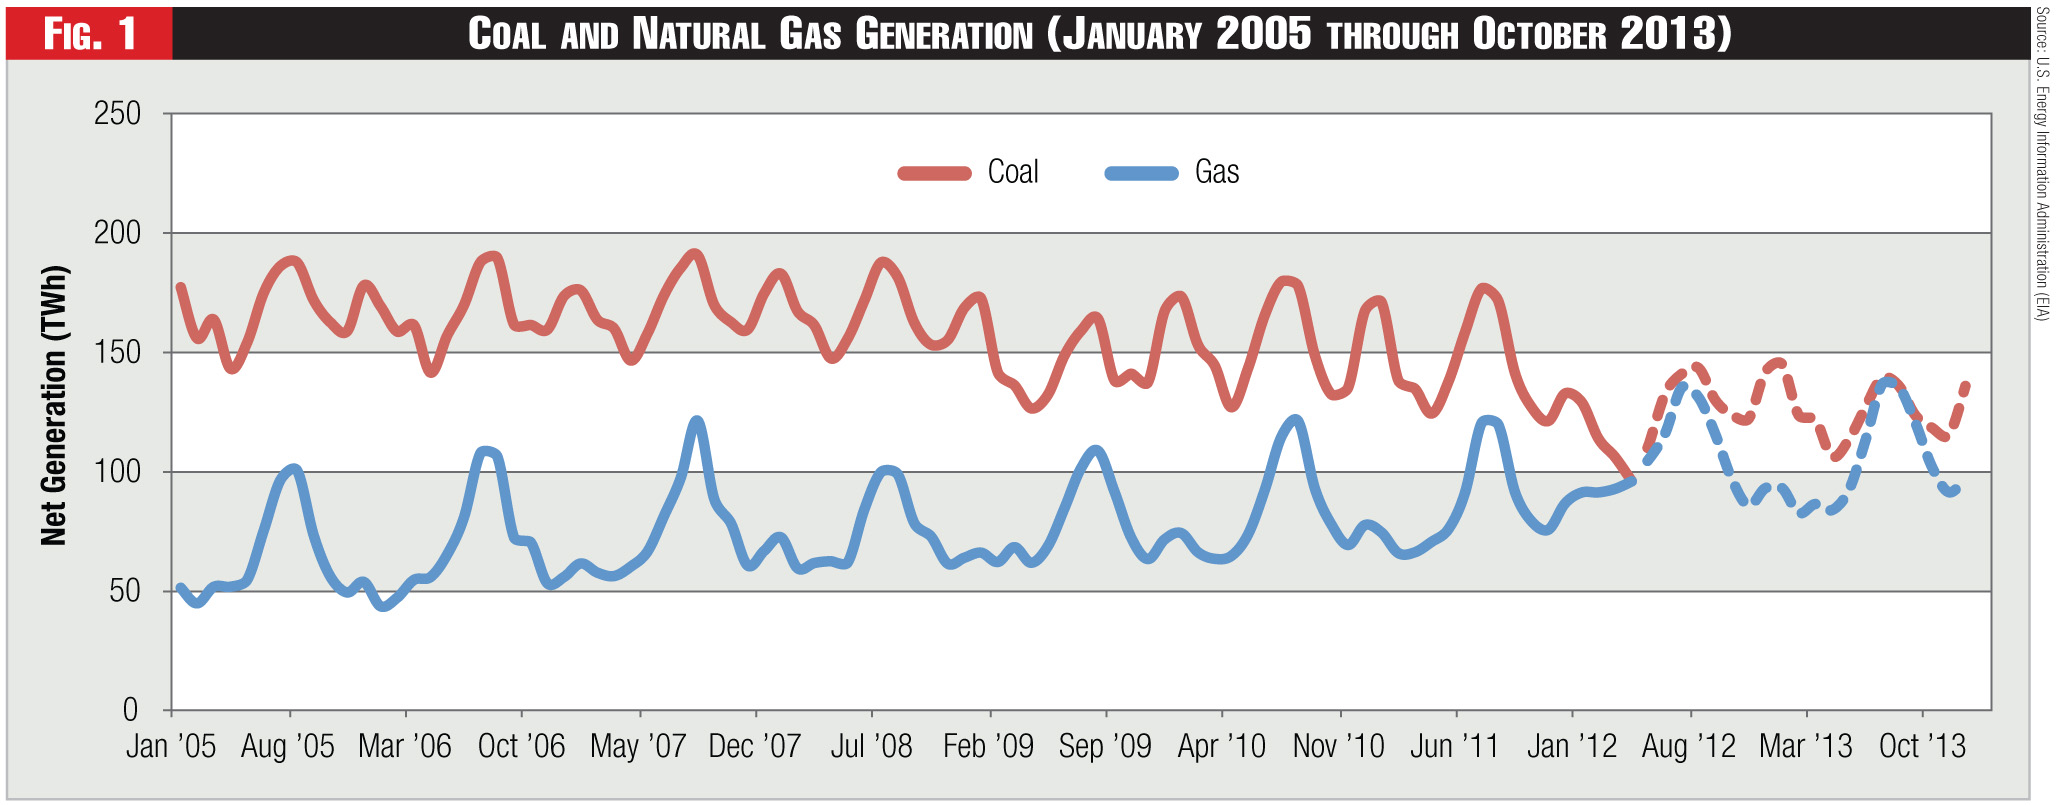 Figure 1 - Coal and Natural Gas Generation (January 2005 through October 2013)